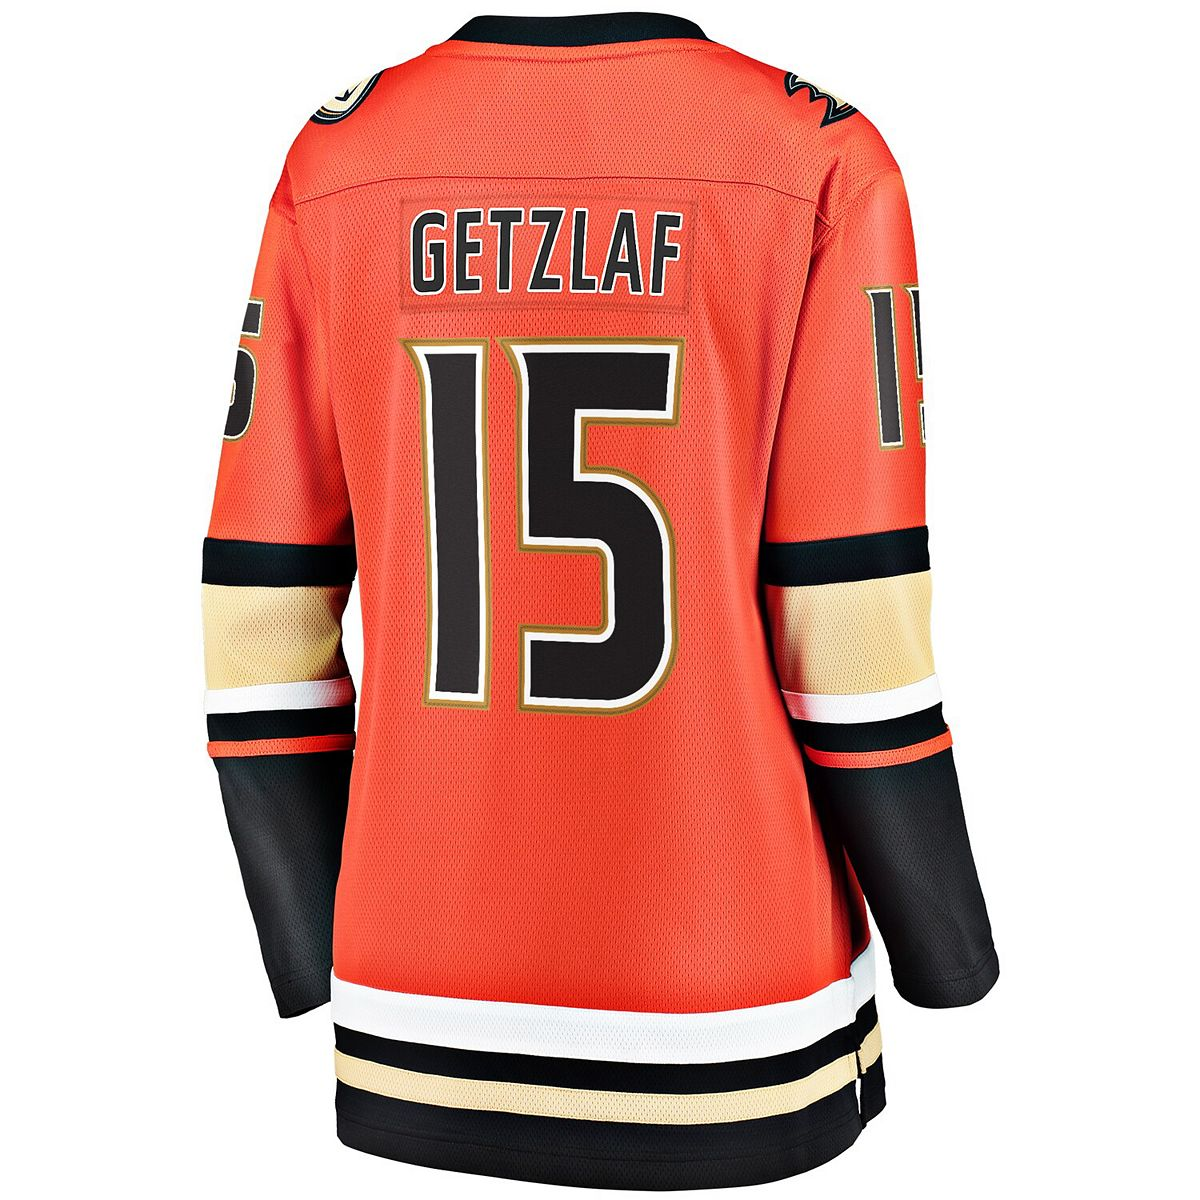 Women's Fanatics Branded Ryan Getzlaf Orange Anaheim Ducks 2019/20 Alternate Premier Breakaway Player Jersey eoUNF